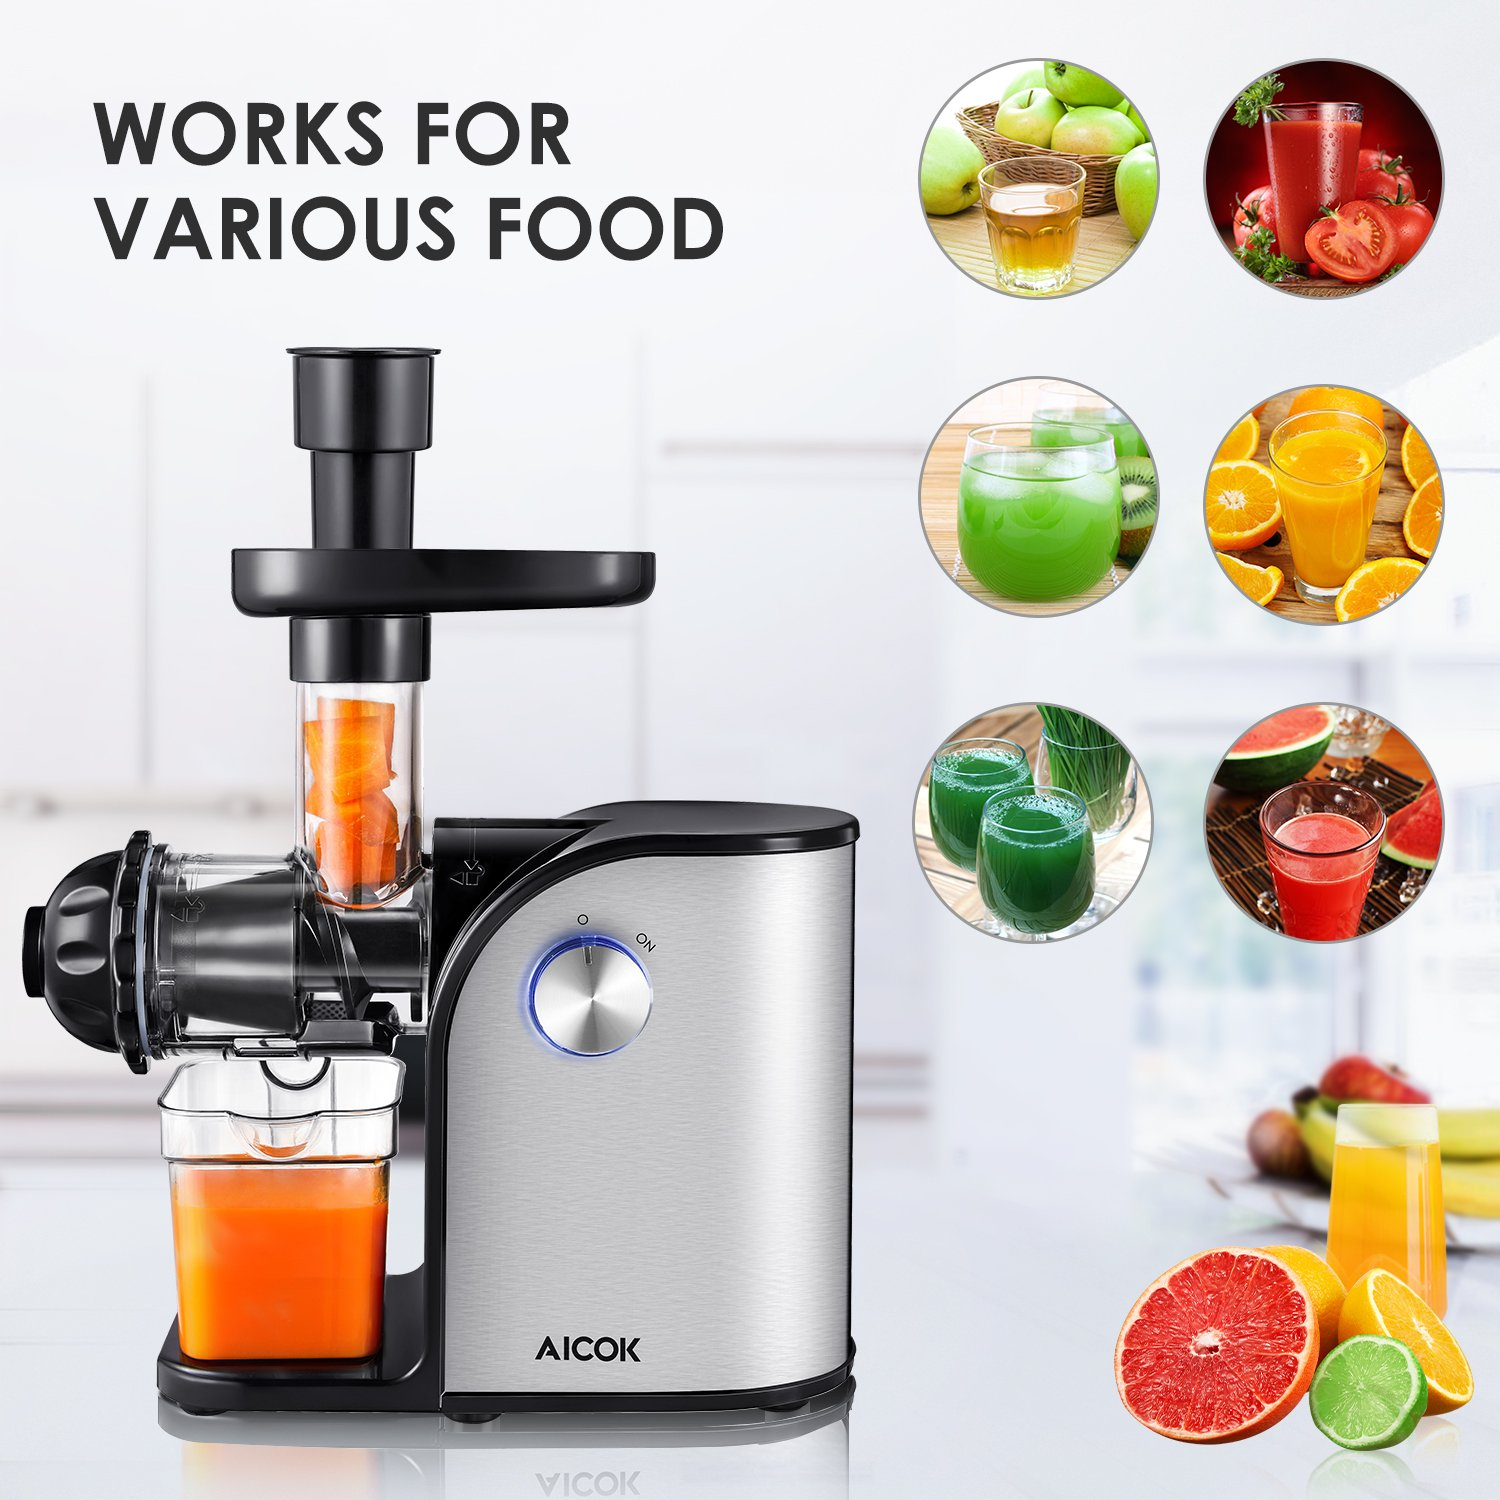 Aicok Slow Masticating juicer, Cold Press Juice Extractor, Stainless Steel, Quiet Motor, High Nutrient Fruit and Vegetable Juice, Black by AICOK (Image #2)